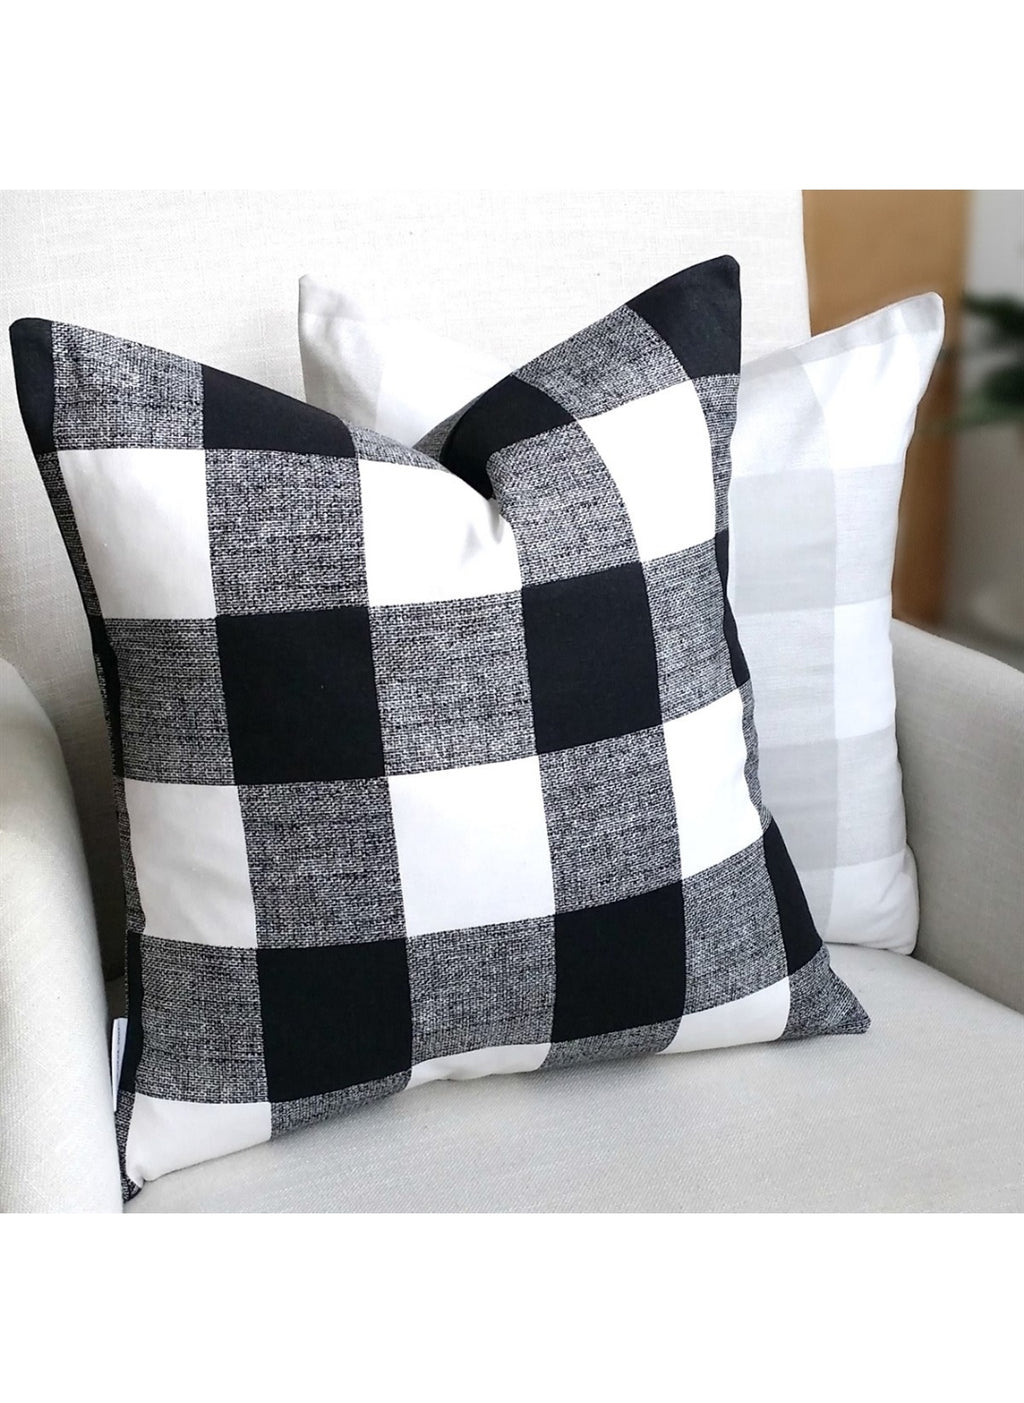 Large Buffalo Check Pillow